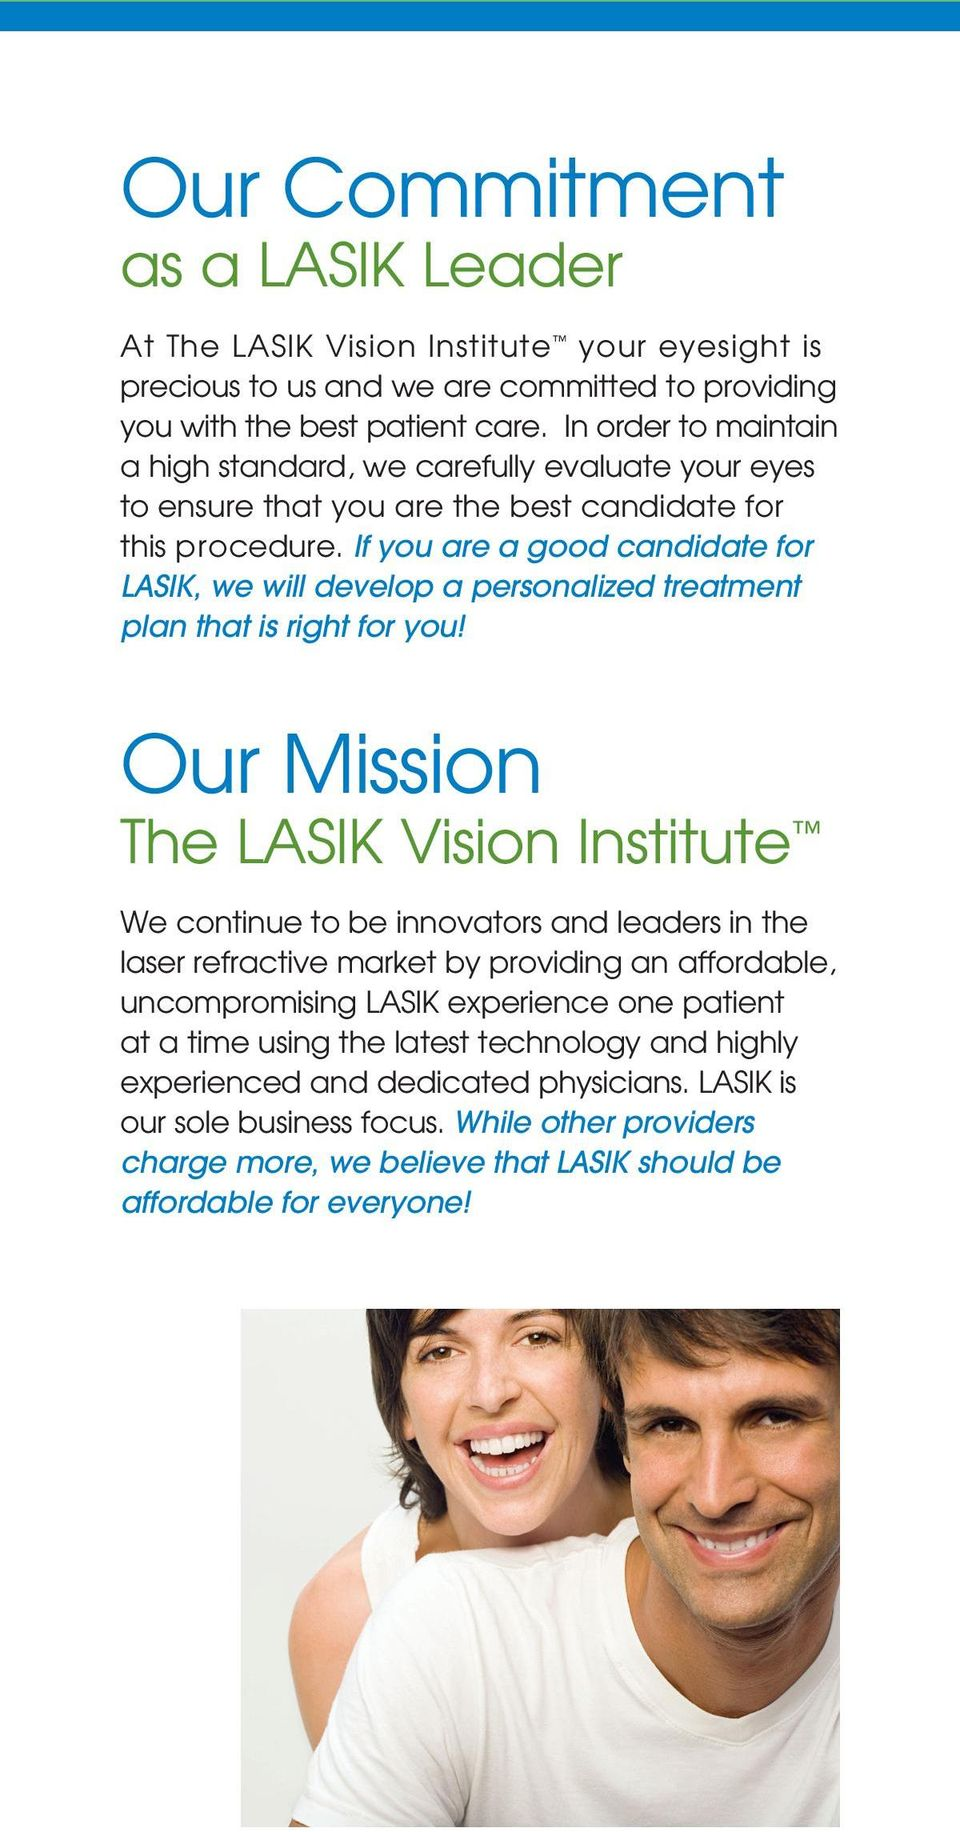 If you are a good candidate for LASIK, we will develop a personalized treatment plan that is right for you!